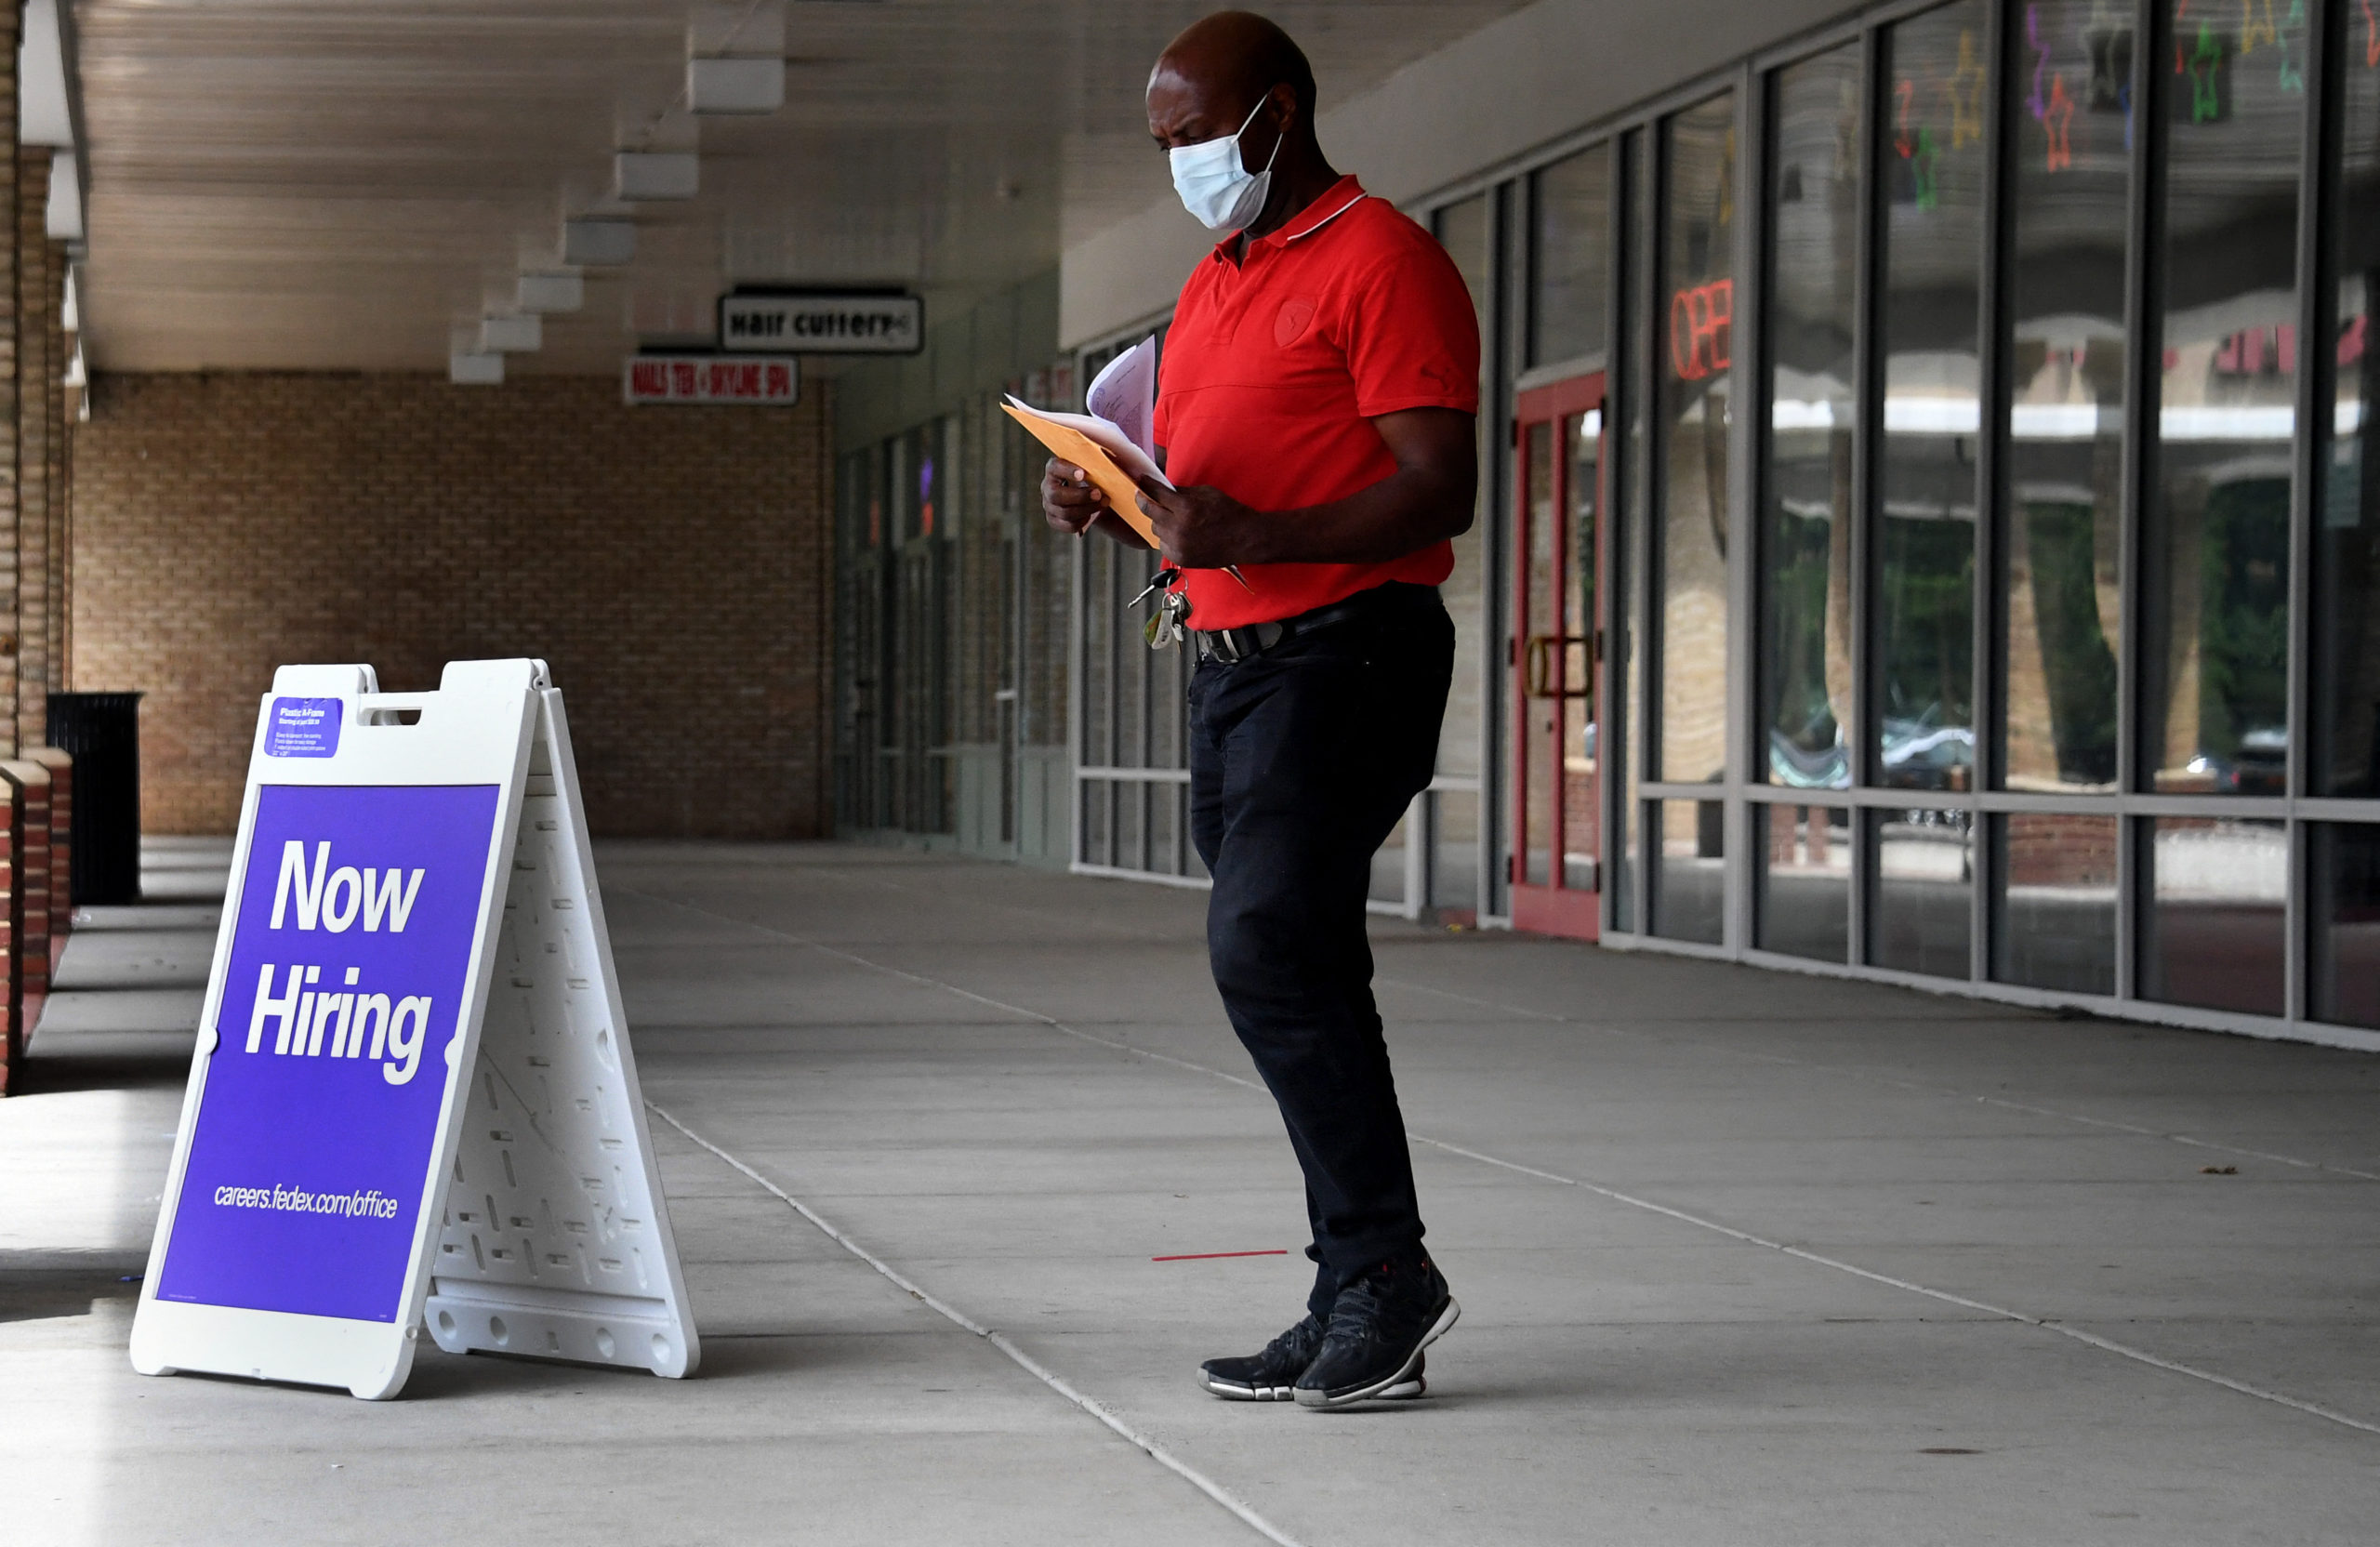 """Pedestrians walk by a """"Now Hiring"""" sign outside a store on Aug. 16 in Arlington, Virginia. (Olivier Douliery/AFP via Getty Images)"""